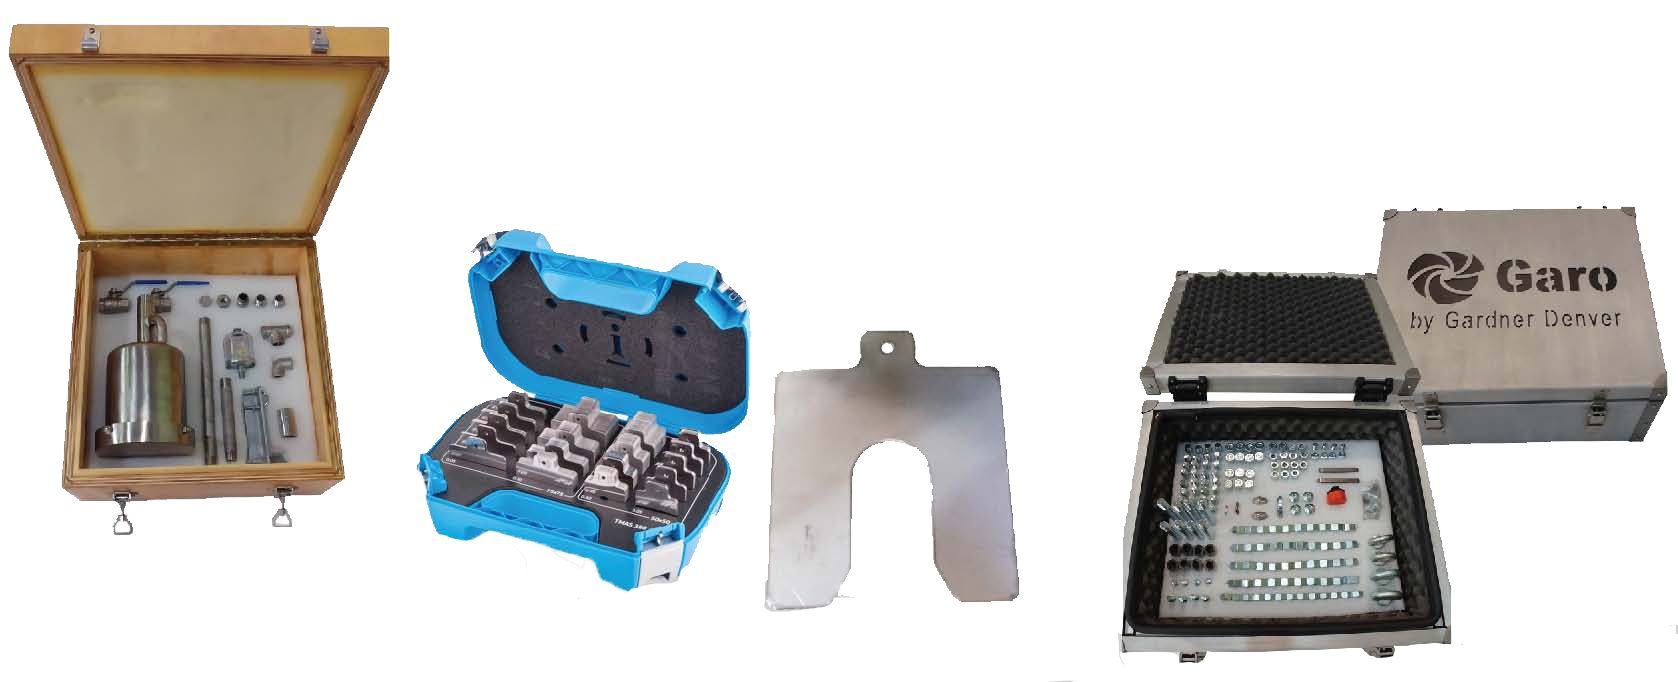 GARO OEM Tool Kits for Liquid Ring Compressor Maintenance and Repair